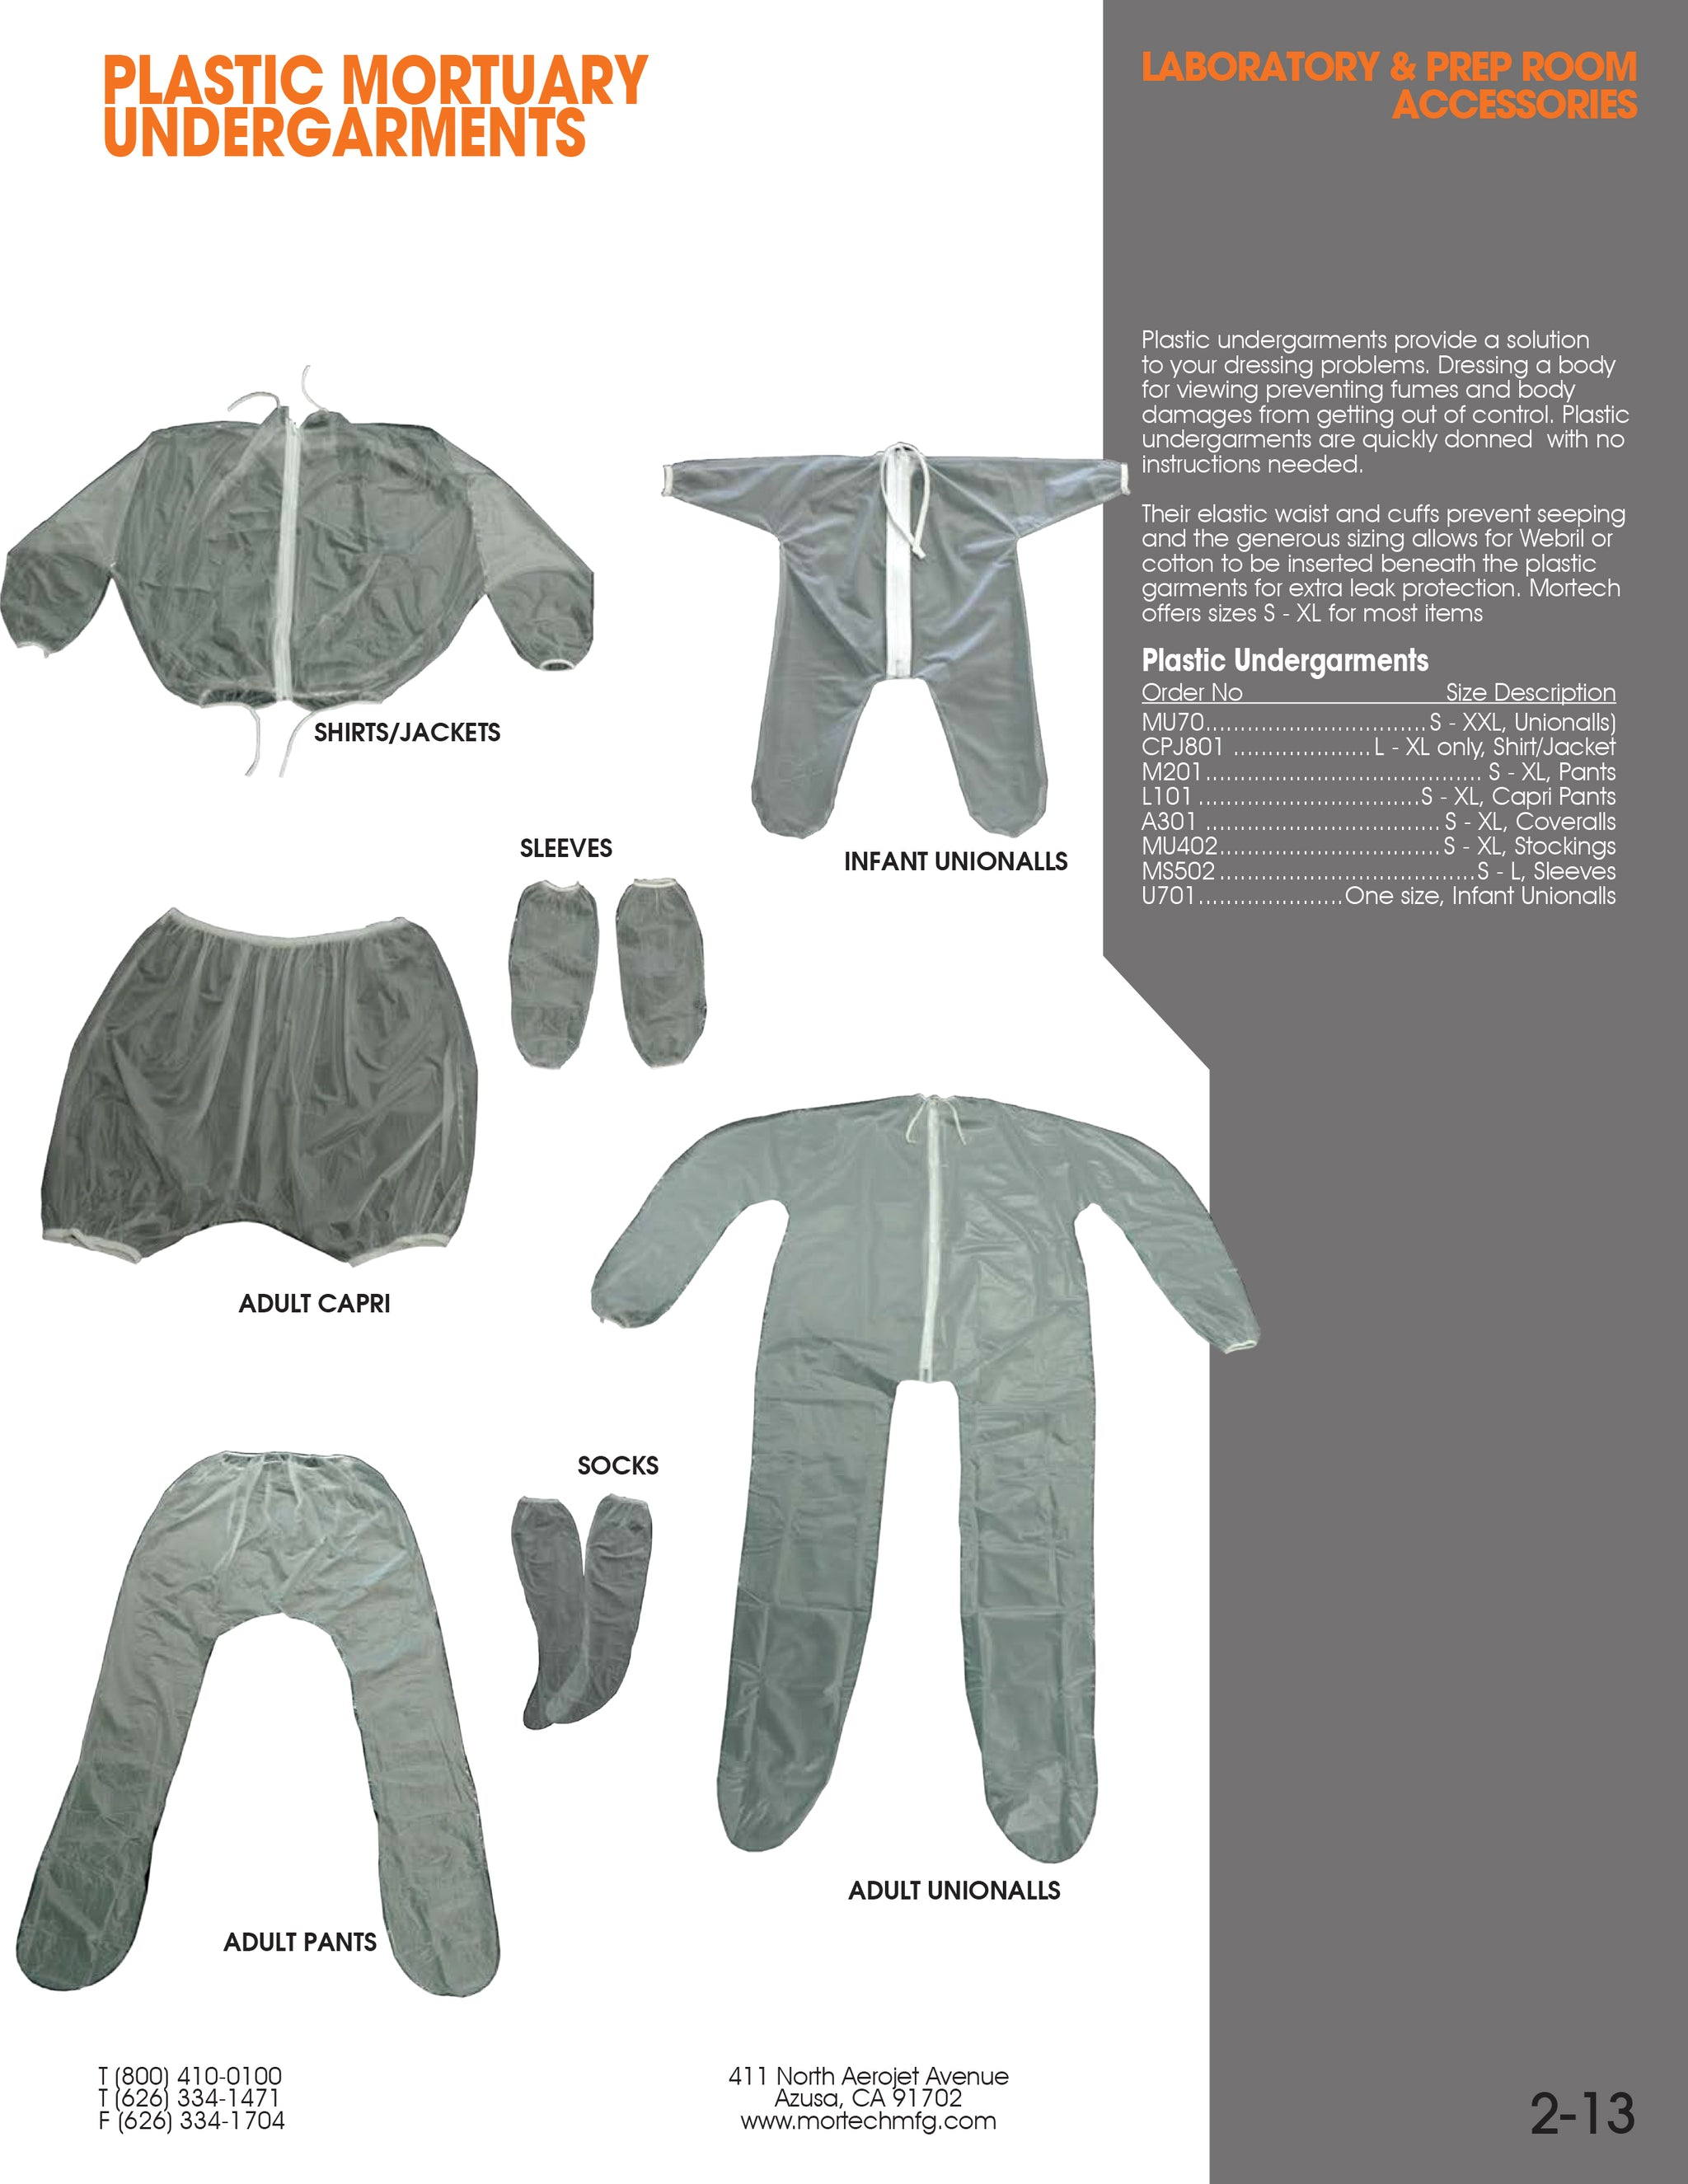 Plastic Undergarments - Adult Unionalls-Laboratory Accessory-Mortech Manufacturing Company Inc. Quality Stainless Steel Autopsy, Morgue, Funeral Home, Necropsy, Veterinary / Anatomy, Dissection Equipment and Accessories